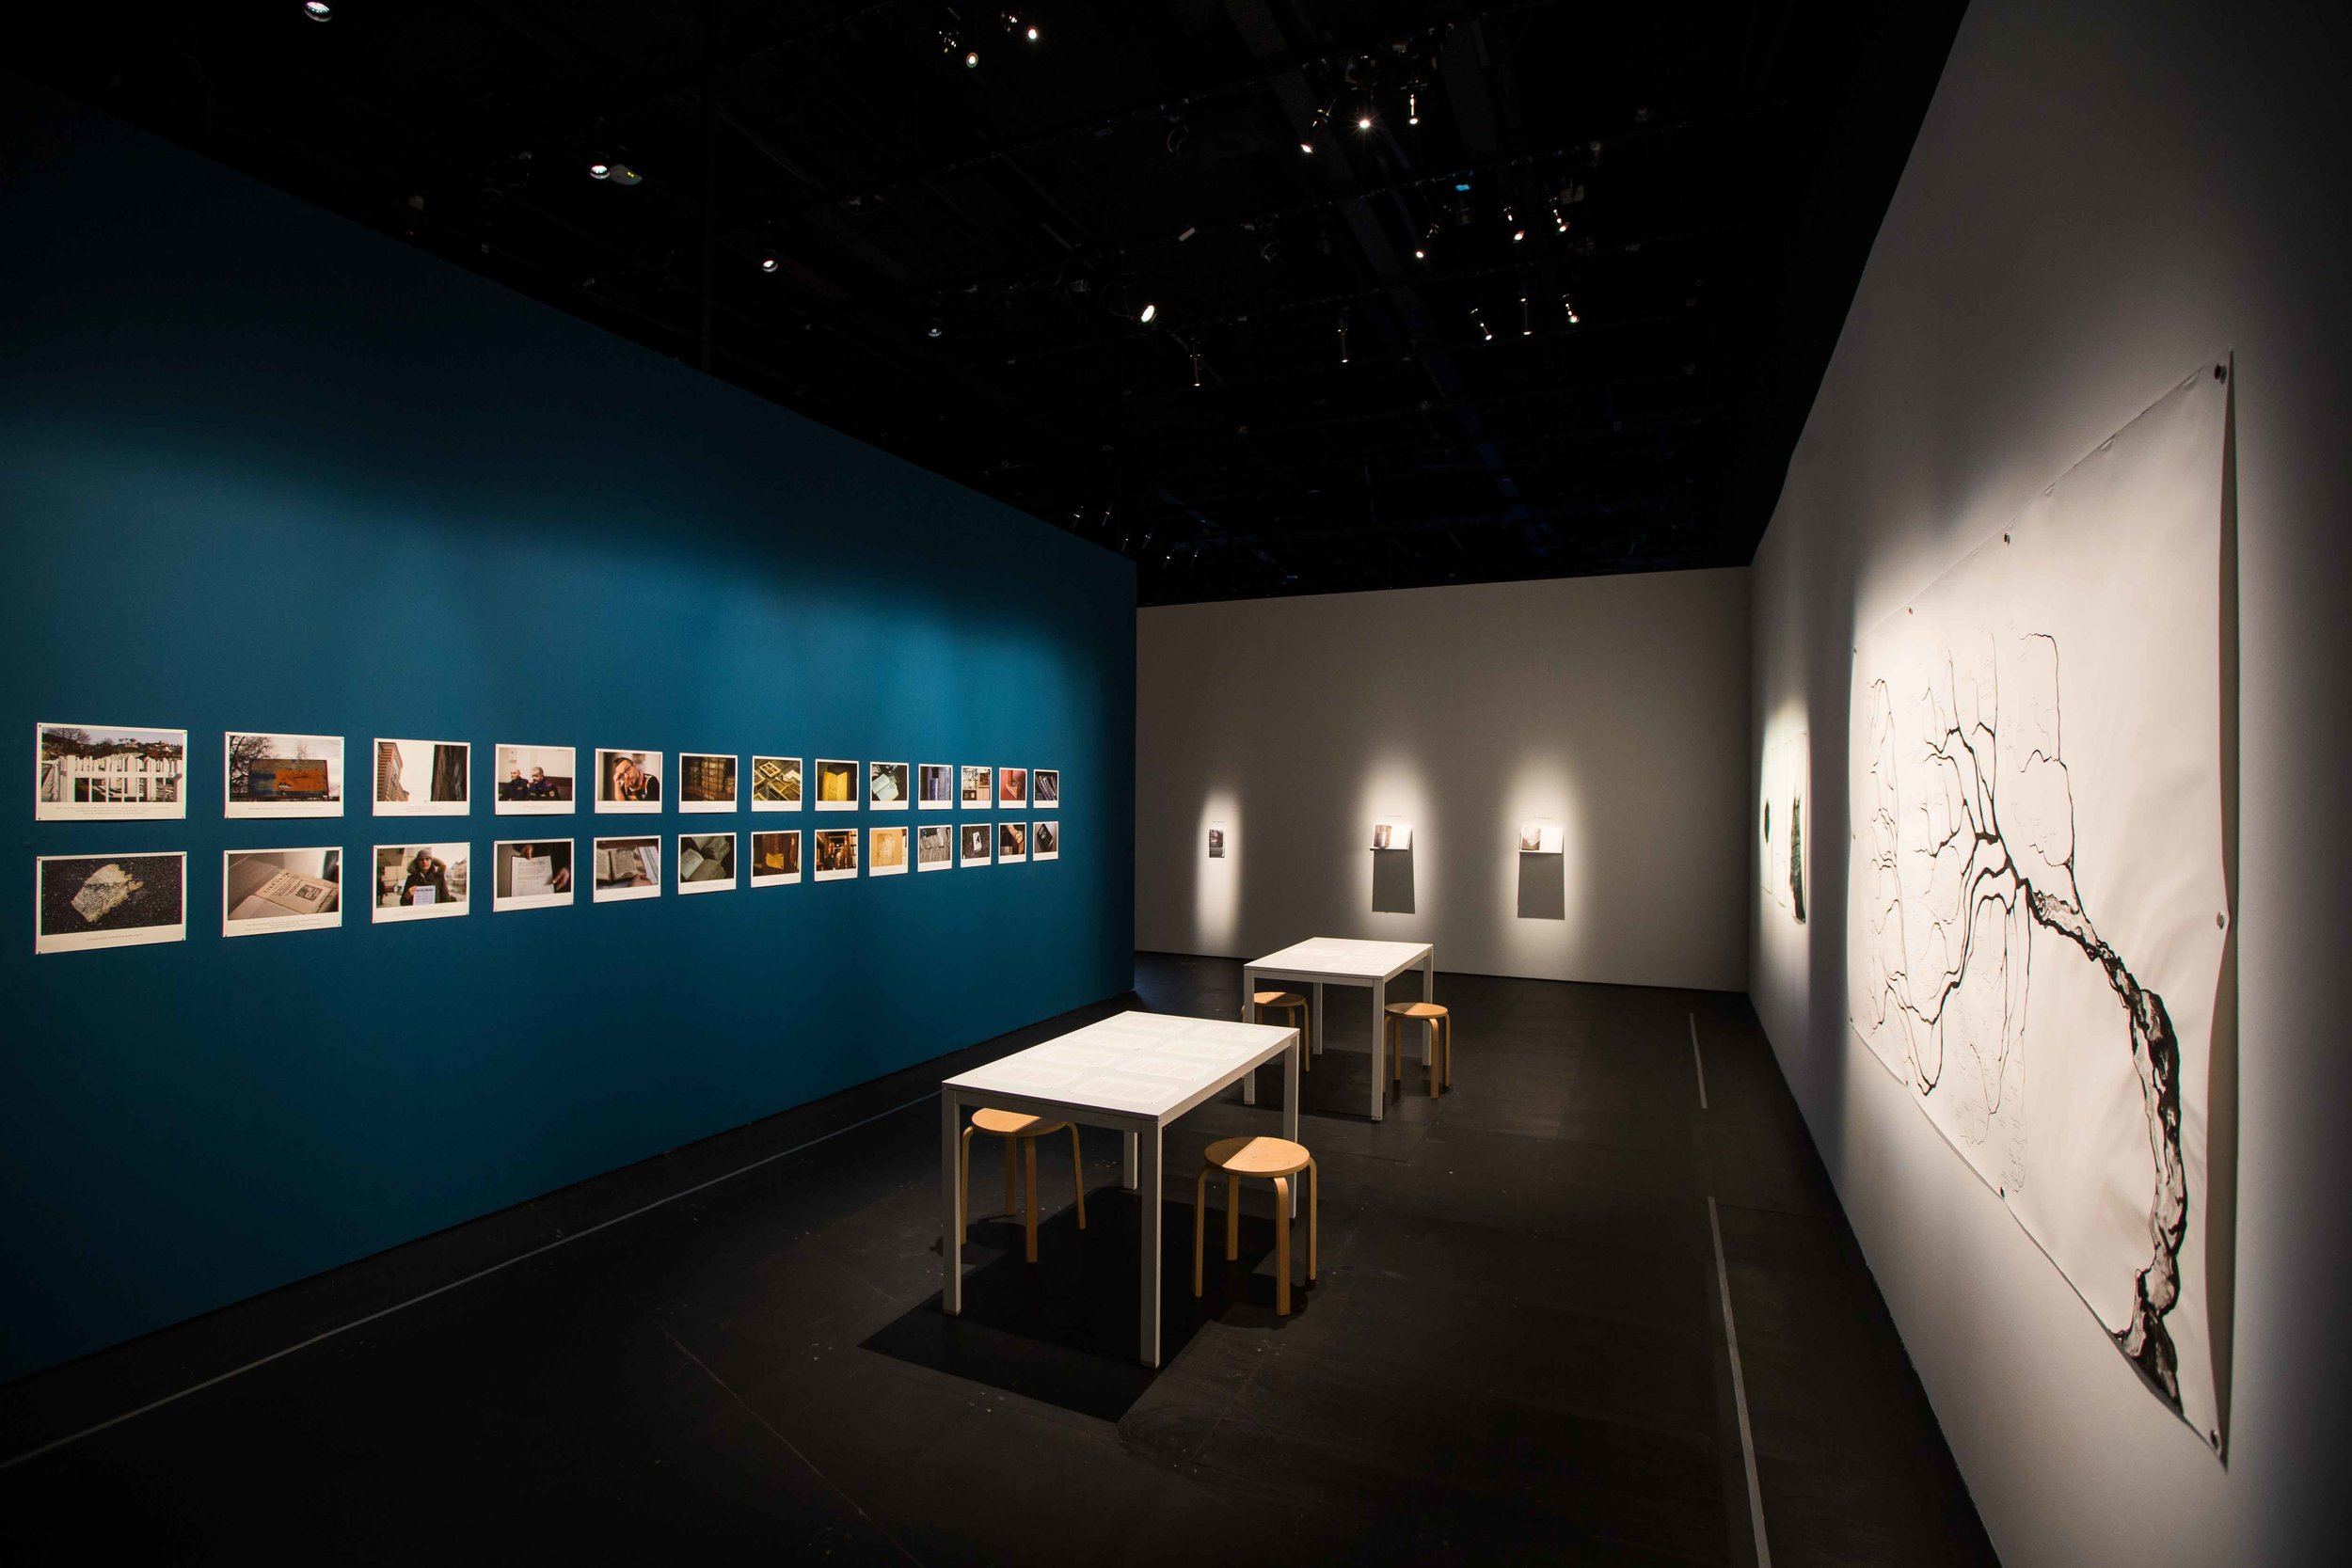 Shubigi Rao, 'Pulp: A Short Biography of the Banished Book. Vol I: Written in the Margins (2014–2016)', 2014-16, film clips, giclée prints with text, ink drawings, artist's book and table with three texts, dimensions variable. Image courtesy of Singapore Art Museum.